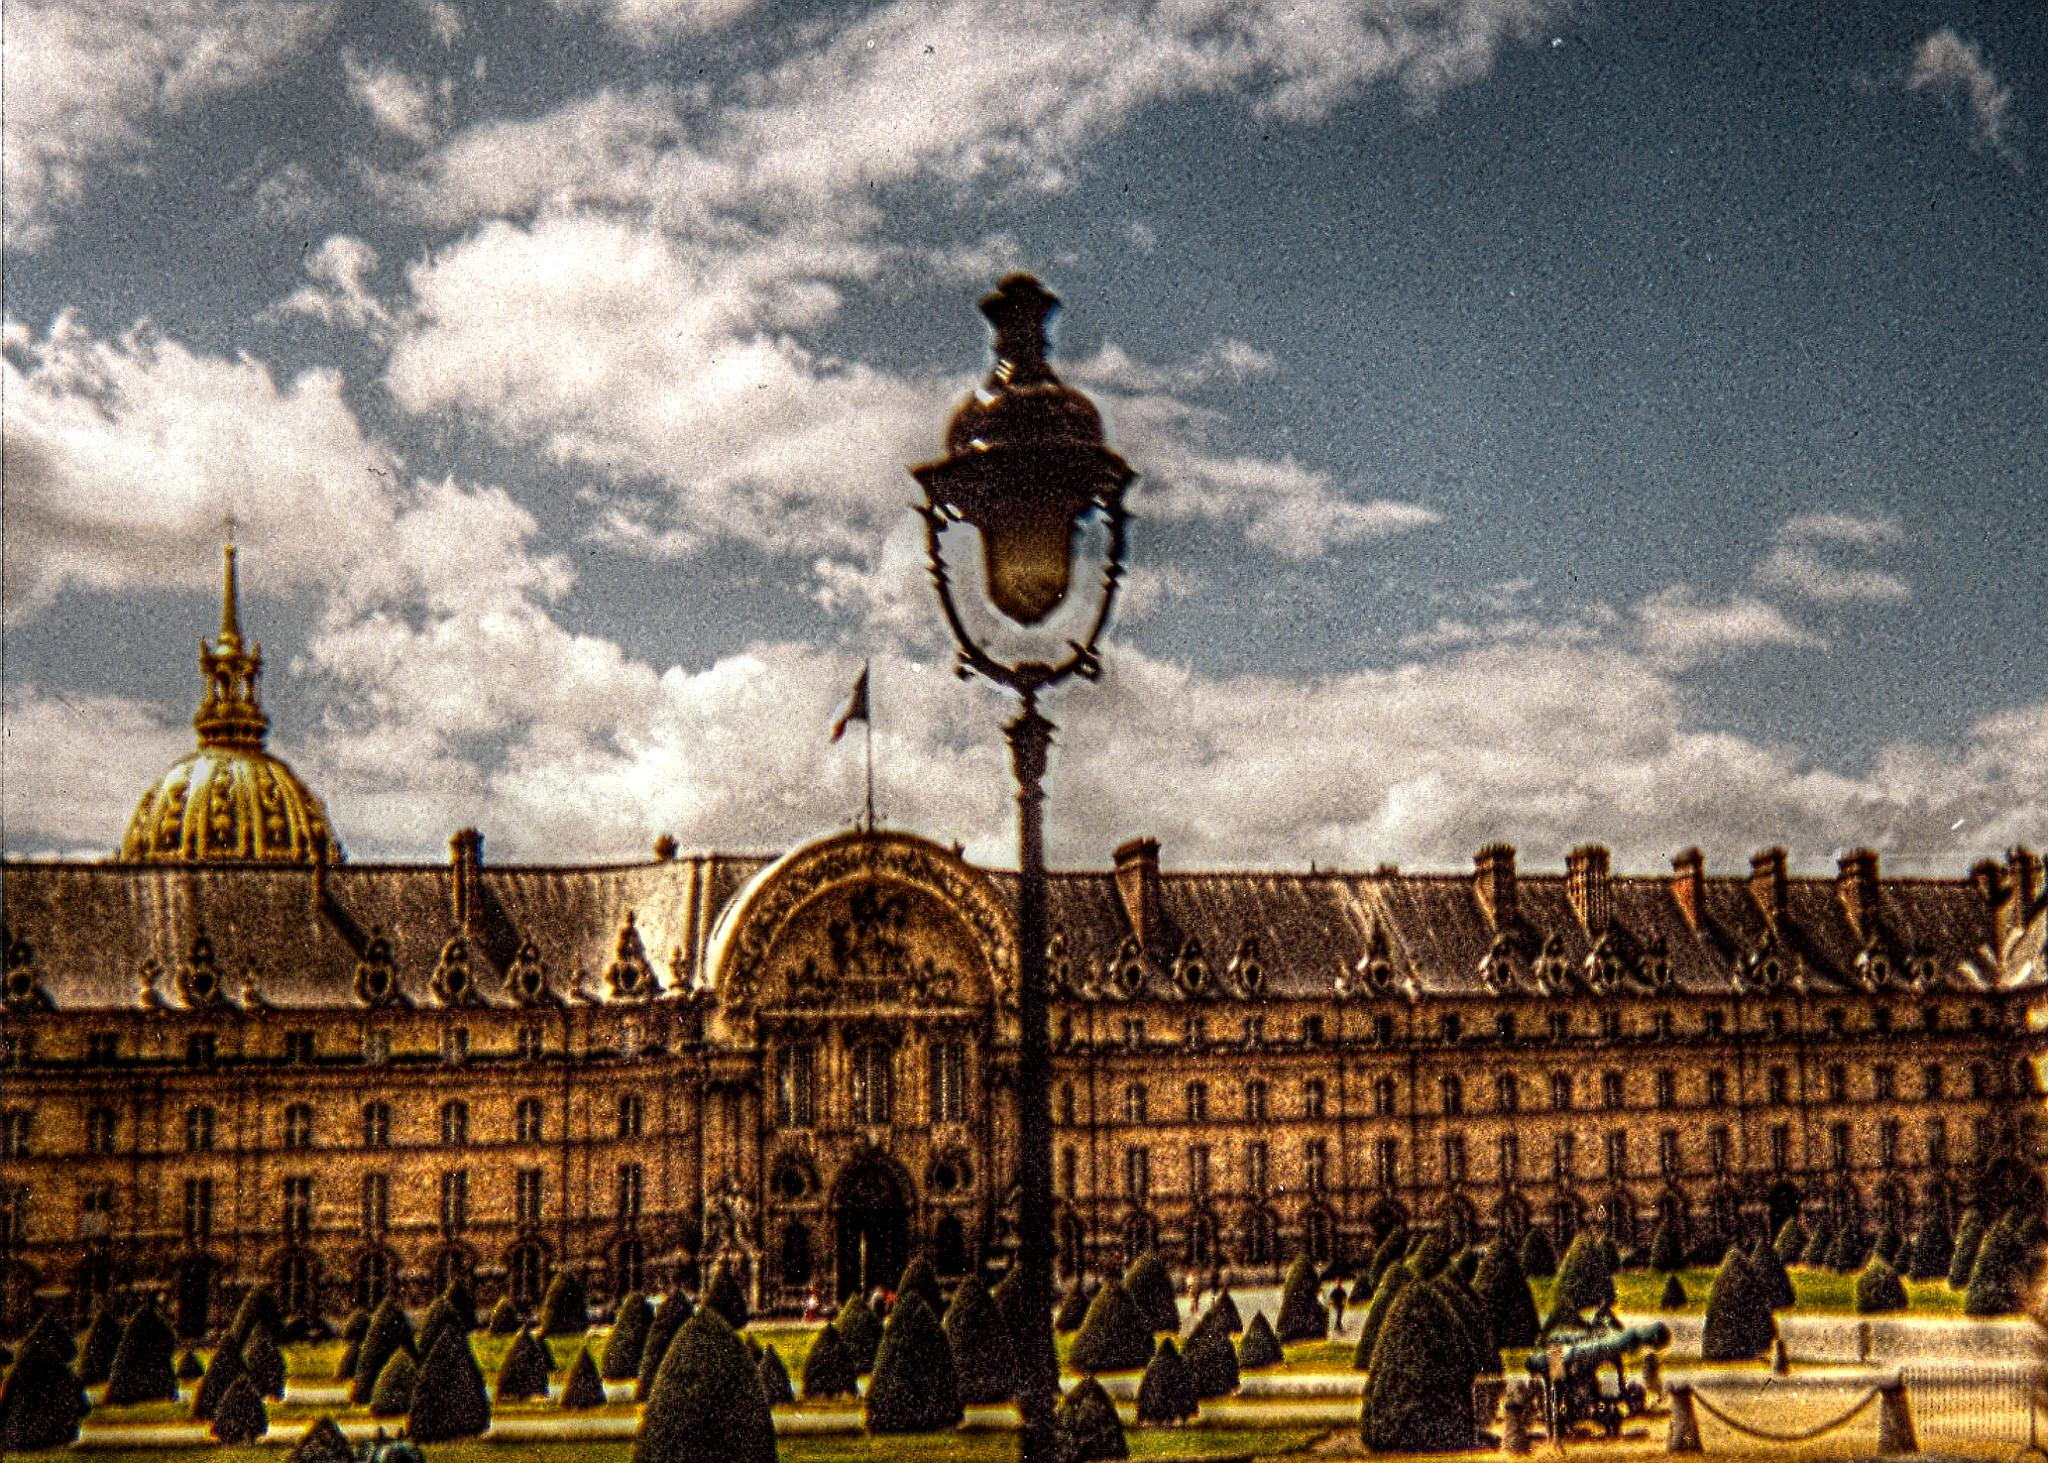 Esplanade des invalides, Paris. by massimo.fior.5